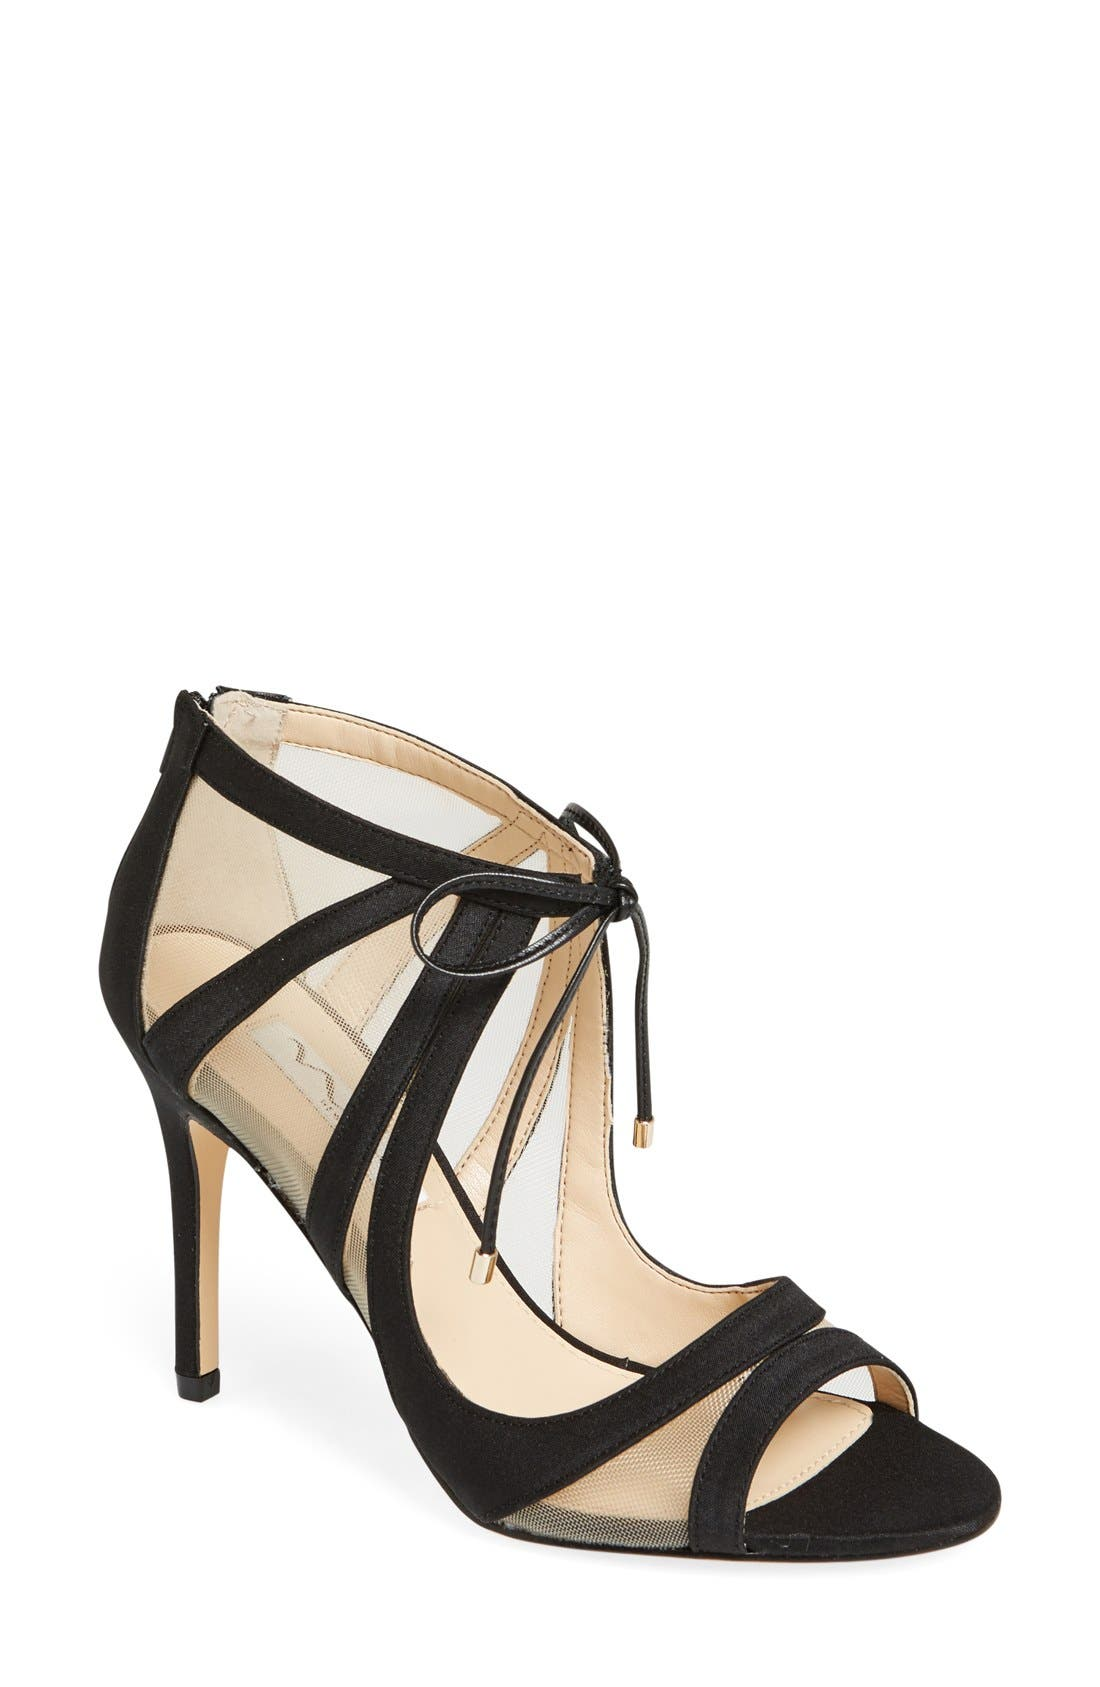 NINA Cherie Illusion Sandal, Main, color, BLACK SATIN/ NUDE MESH